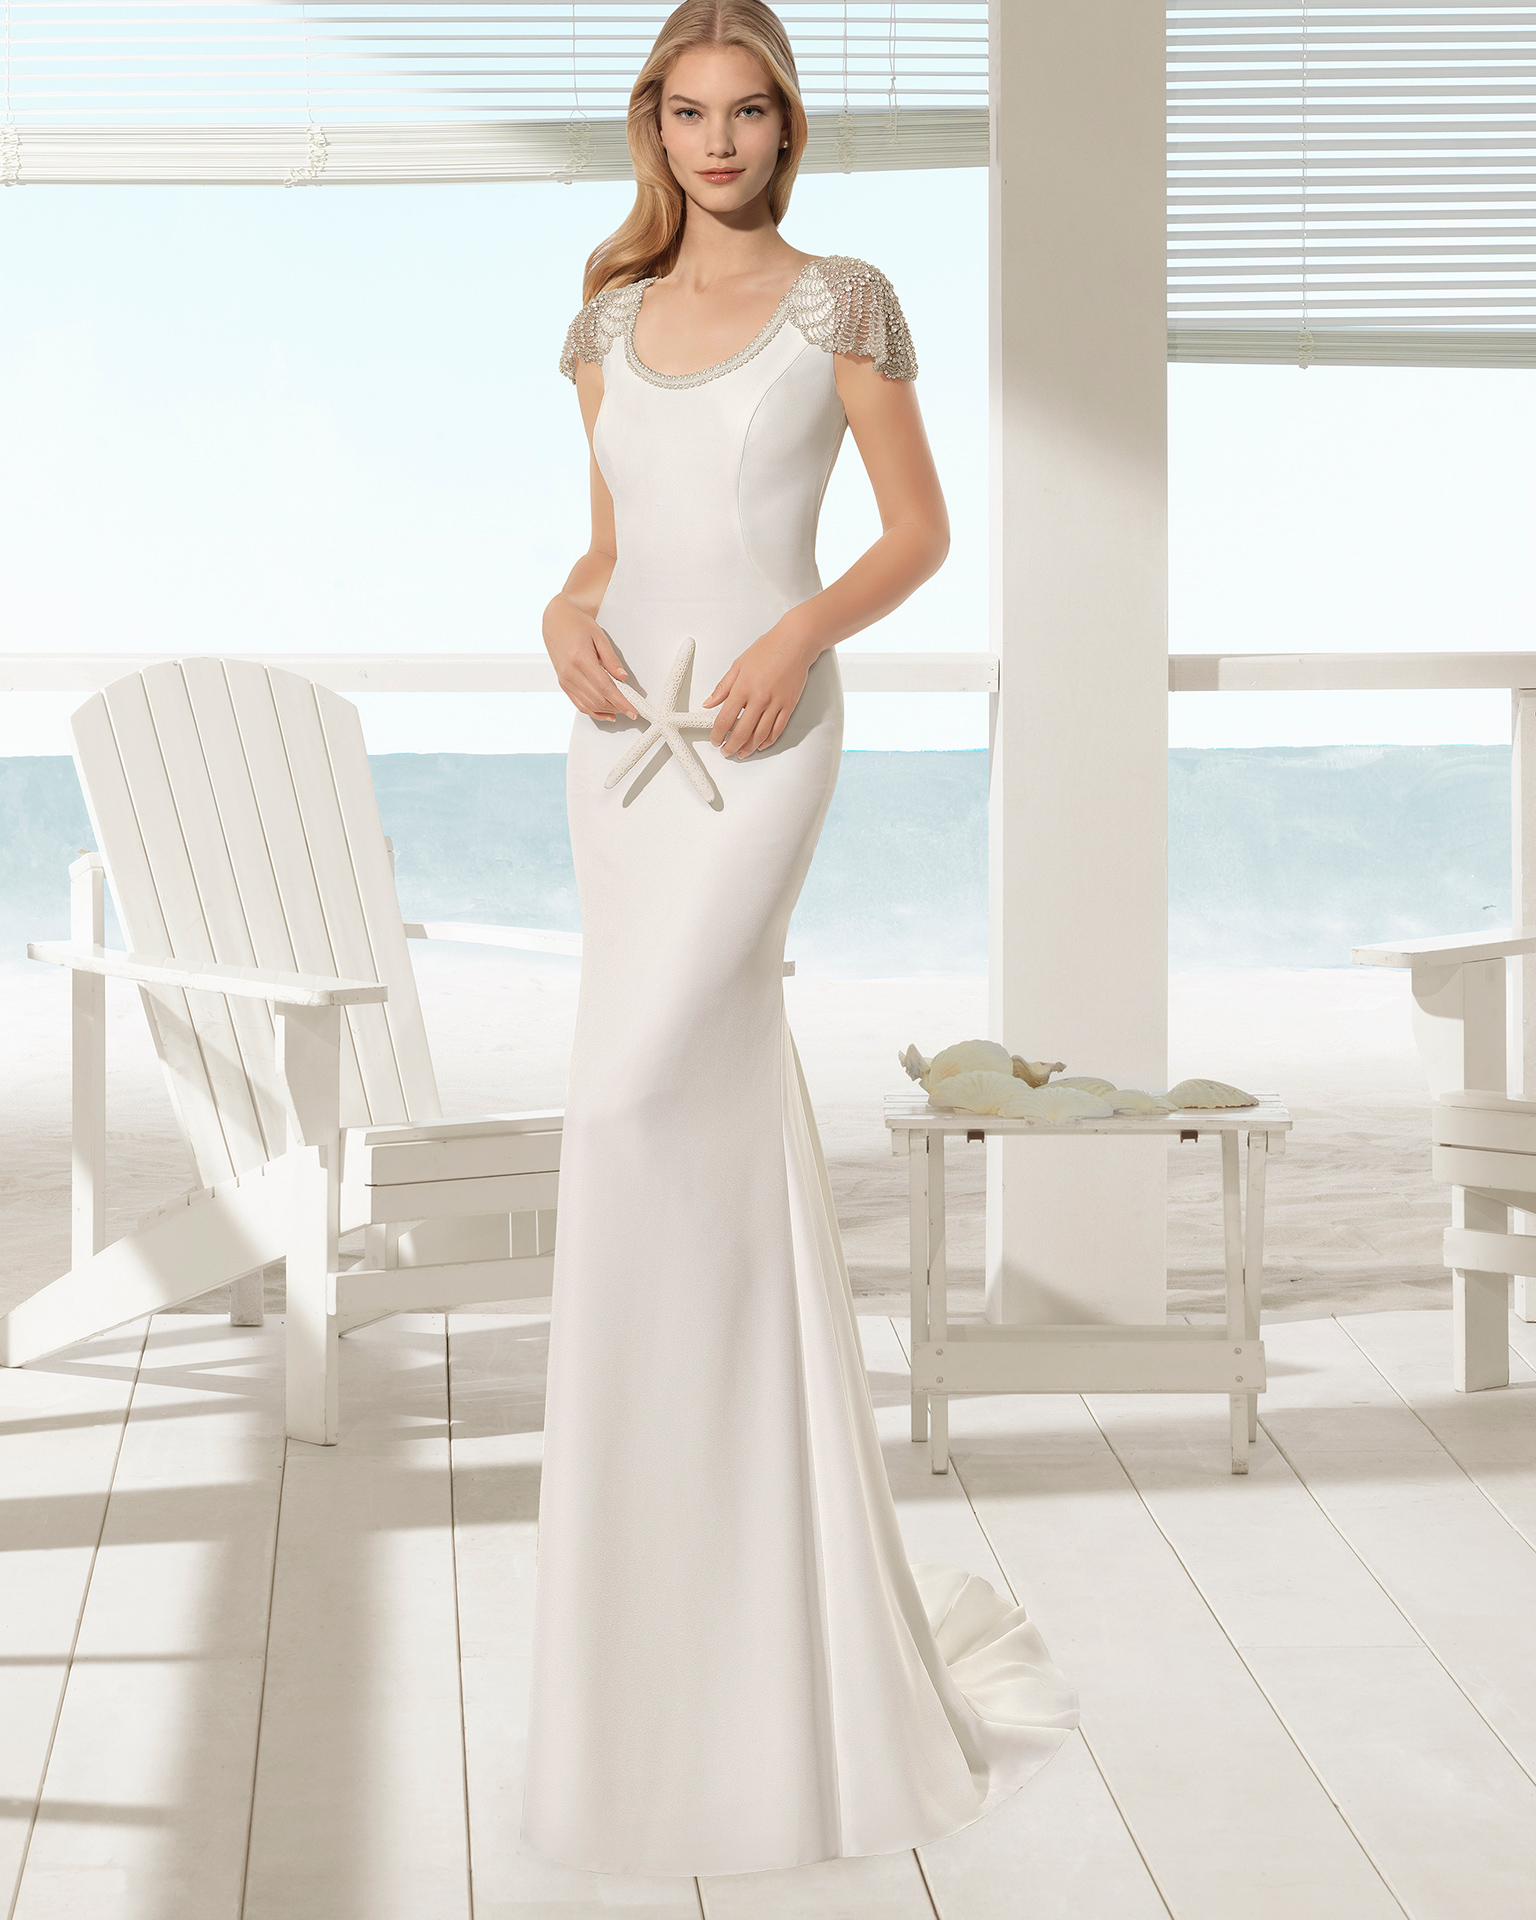 Crepe sheath wedding dress with round neck and jewelled back with frosted beading, in natural.